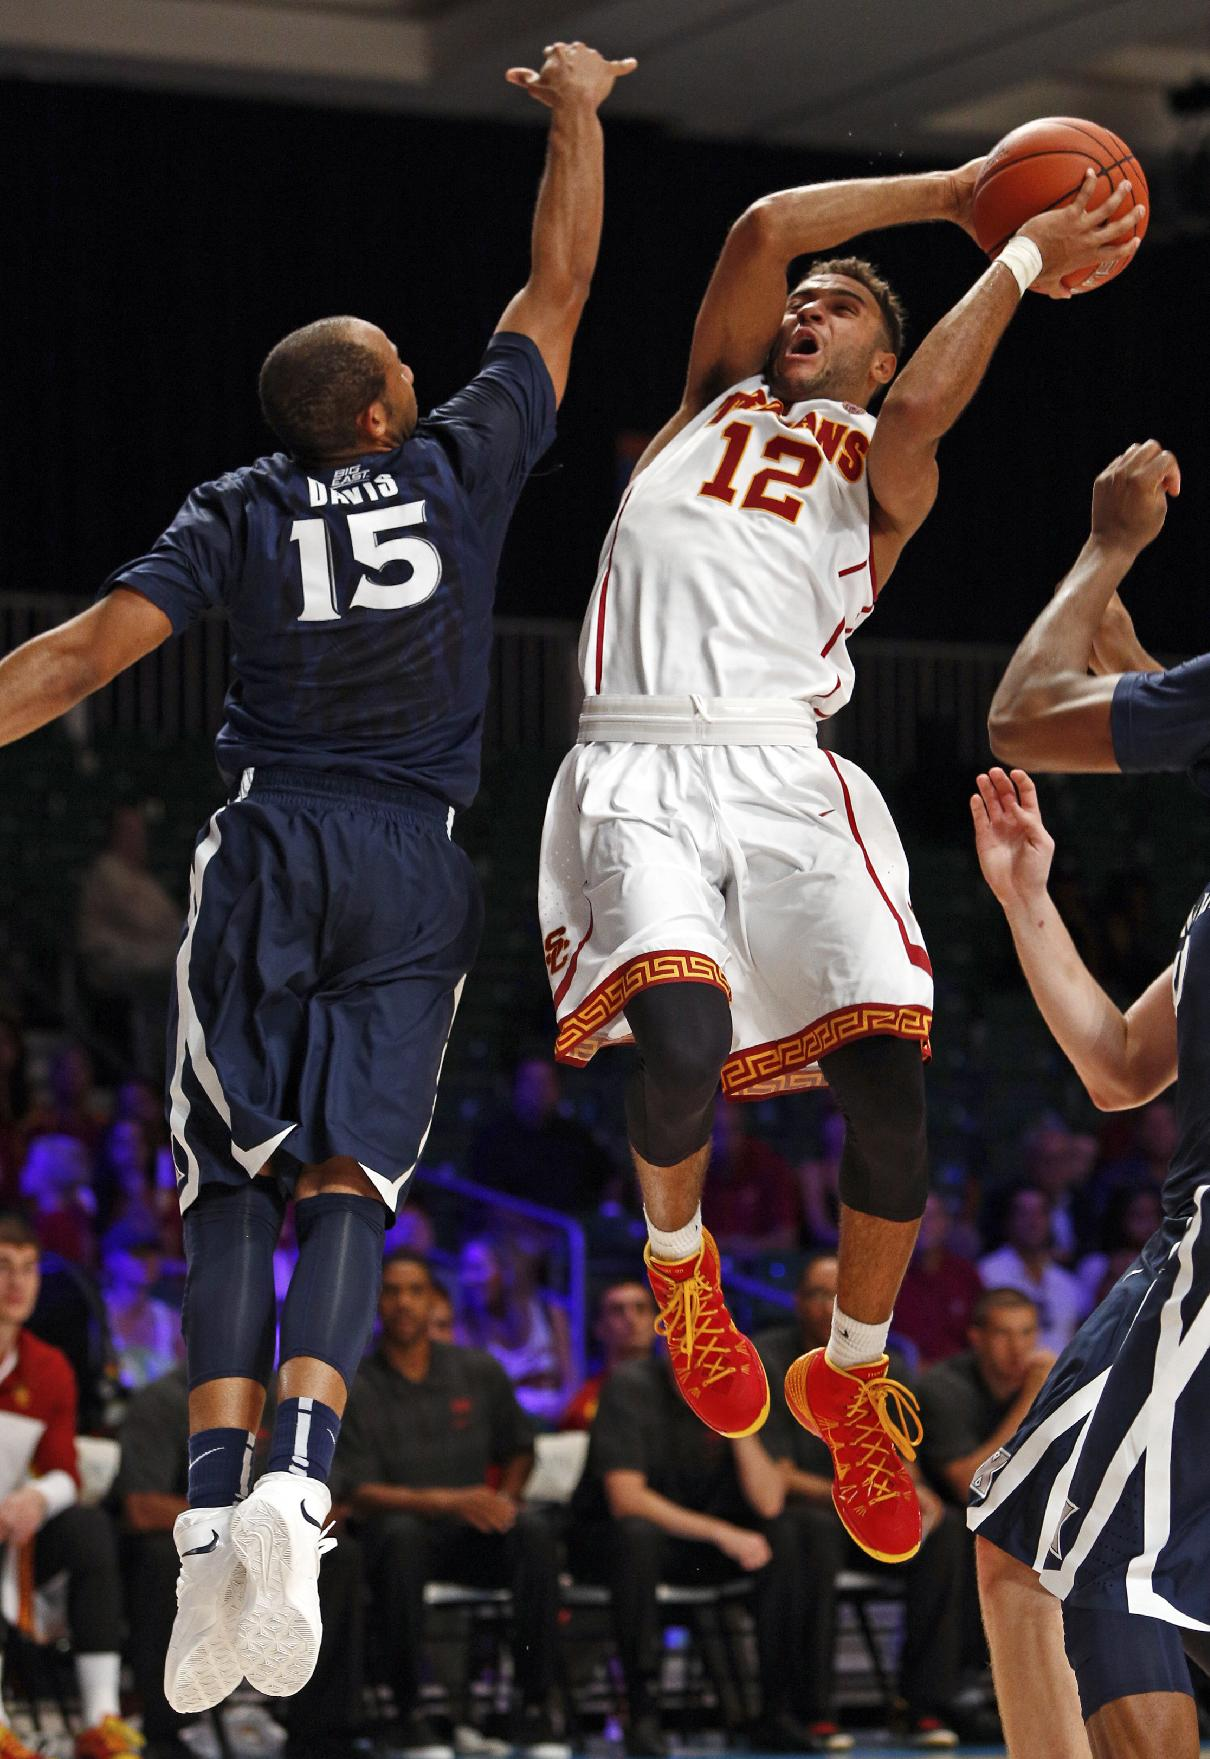 Southern California's Julian Jacobs, right, drives up to the basket avoiding the block of Xavier's Myles Davis during the second half of an NCAA college basketball game in Paradise Island, Bahamas, Saturday, Nov. 30, 2013. USC won 84-78